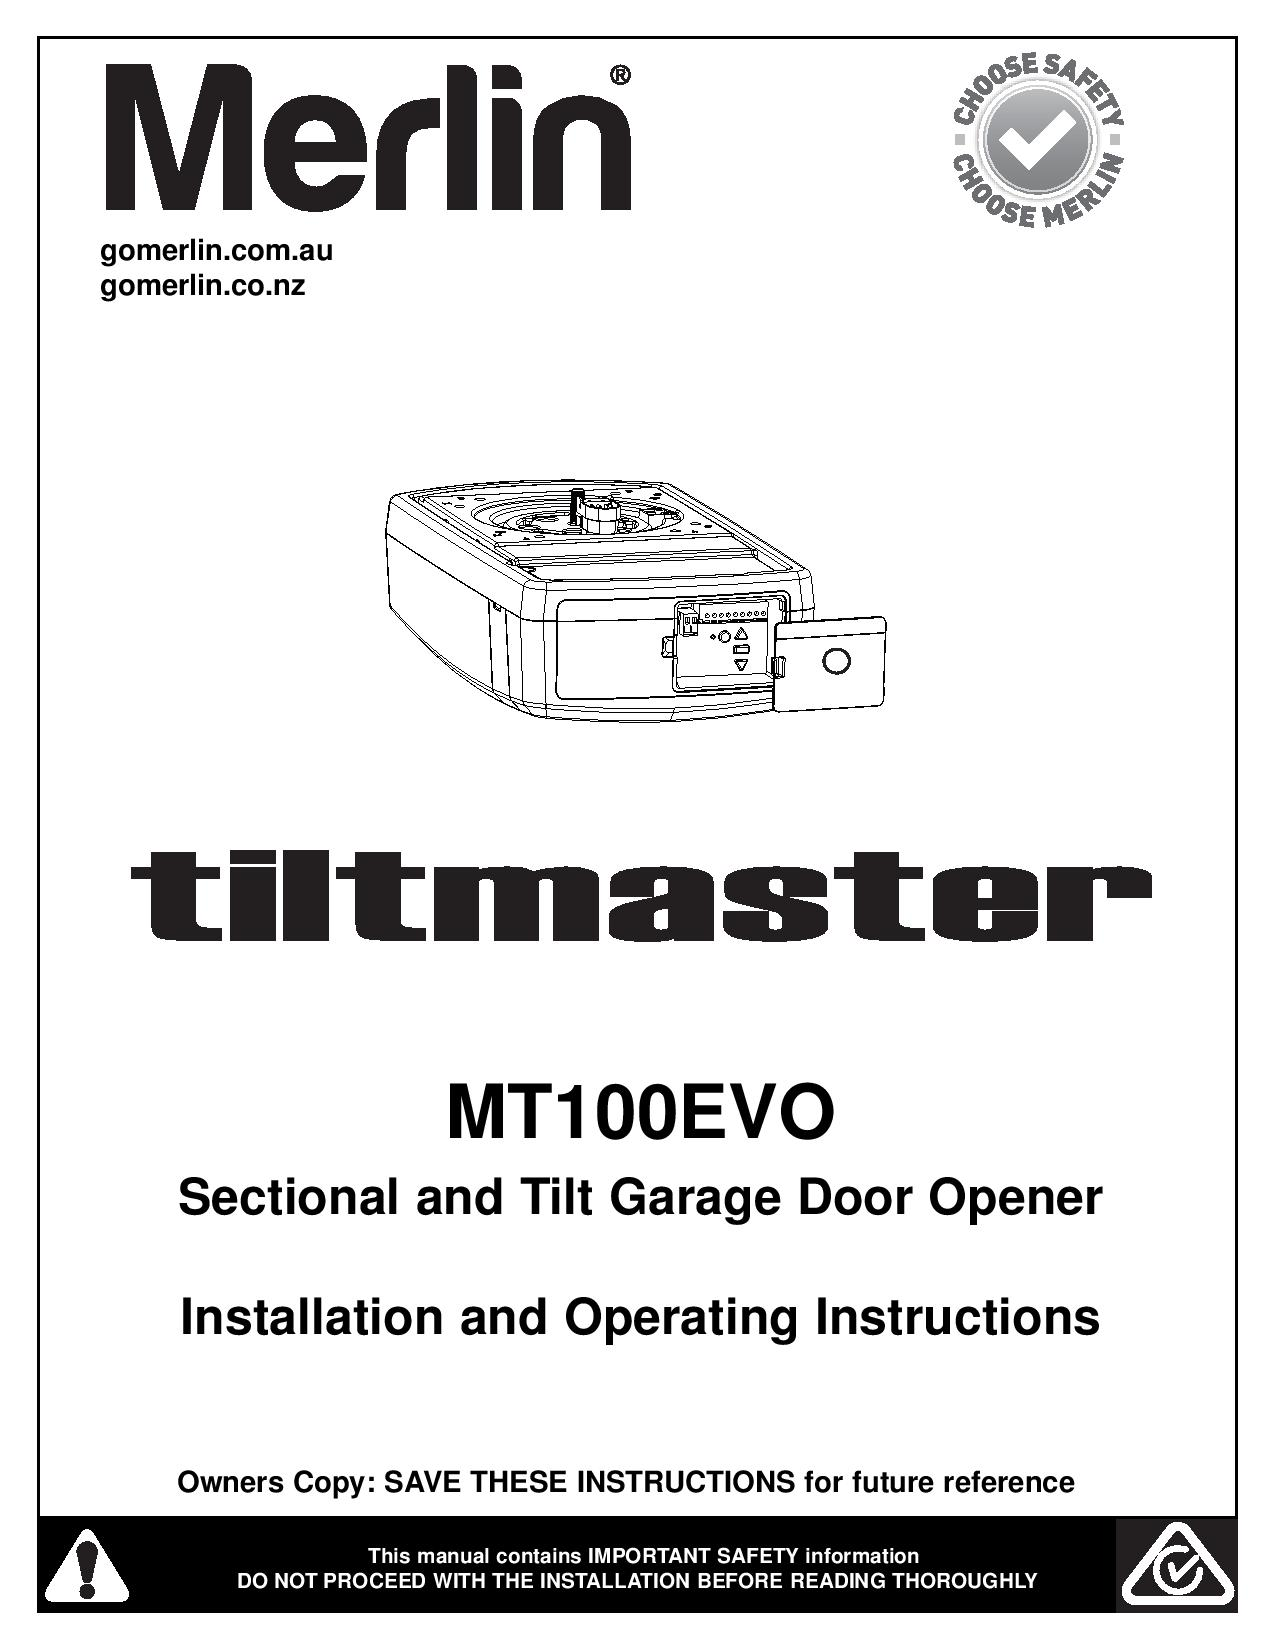 merlin garage door openers 230t manual